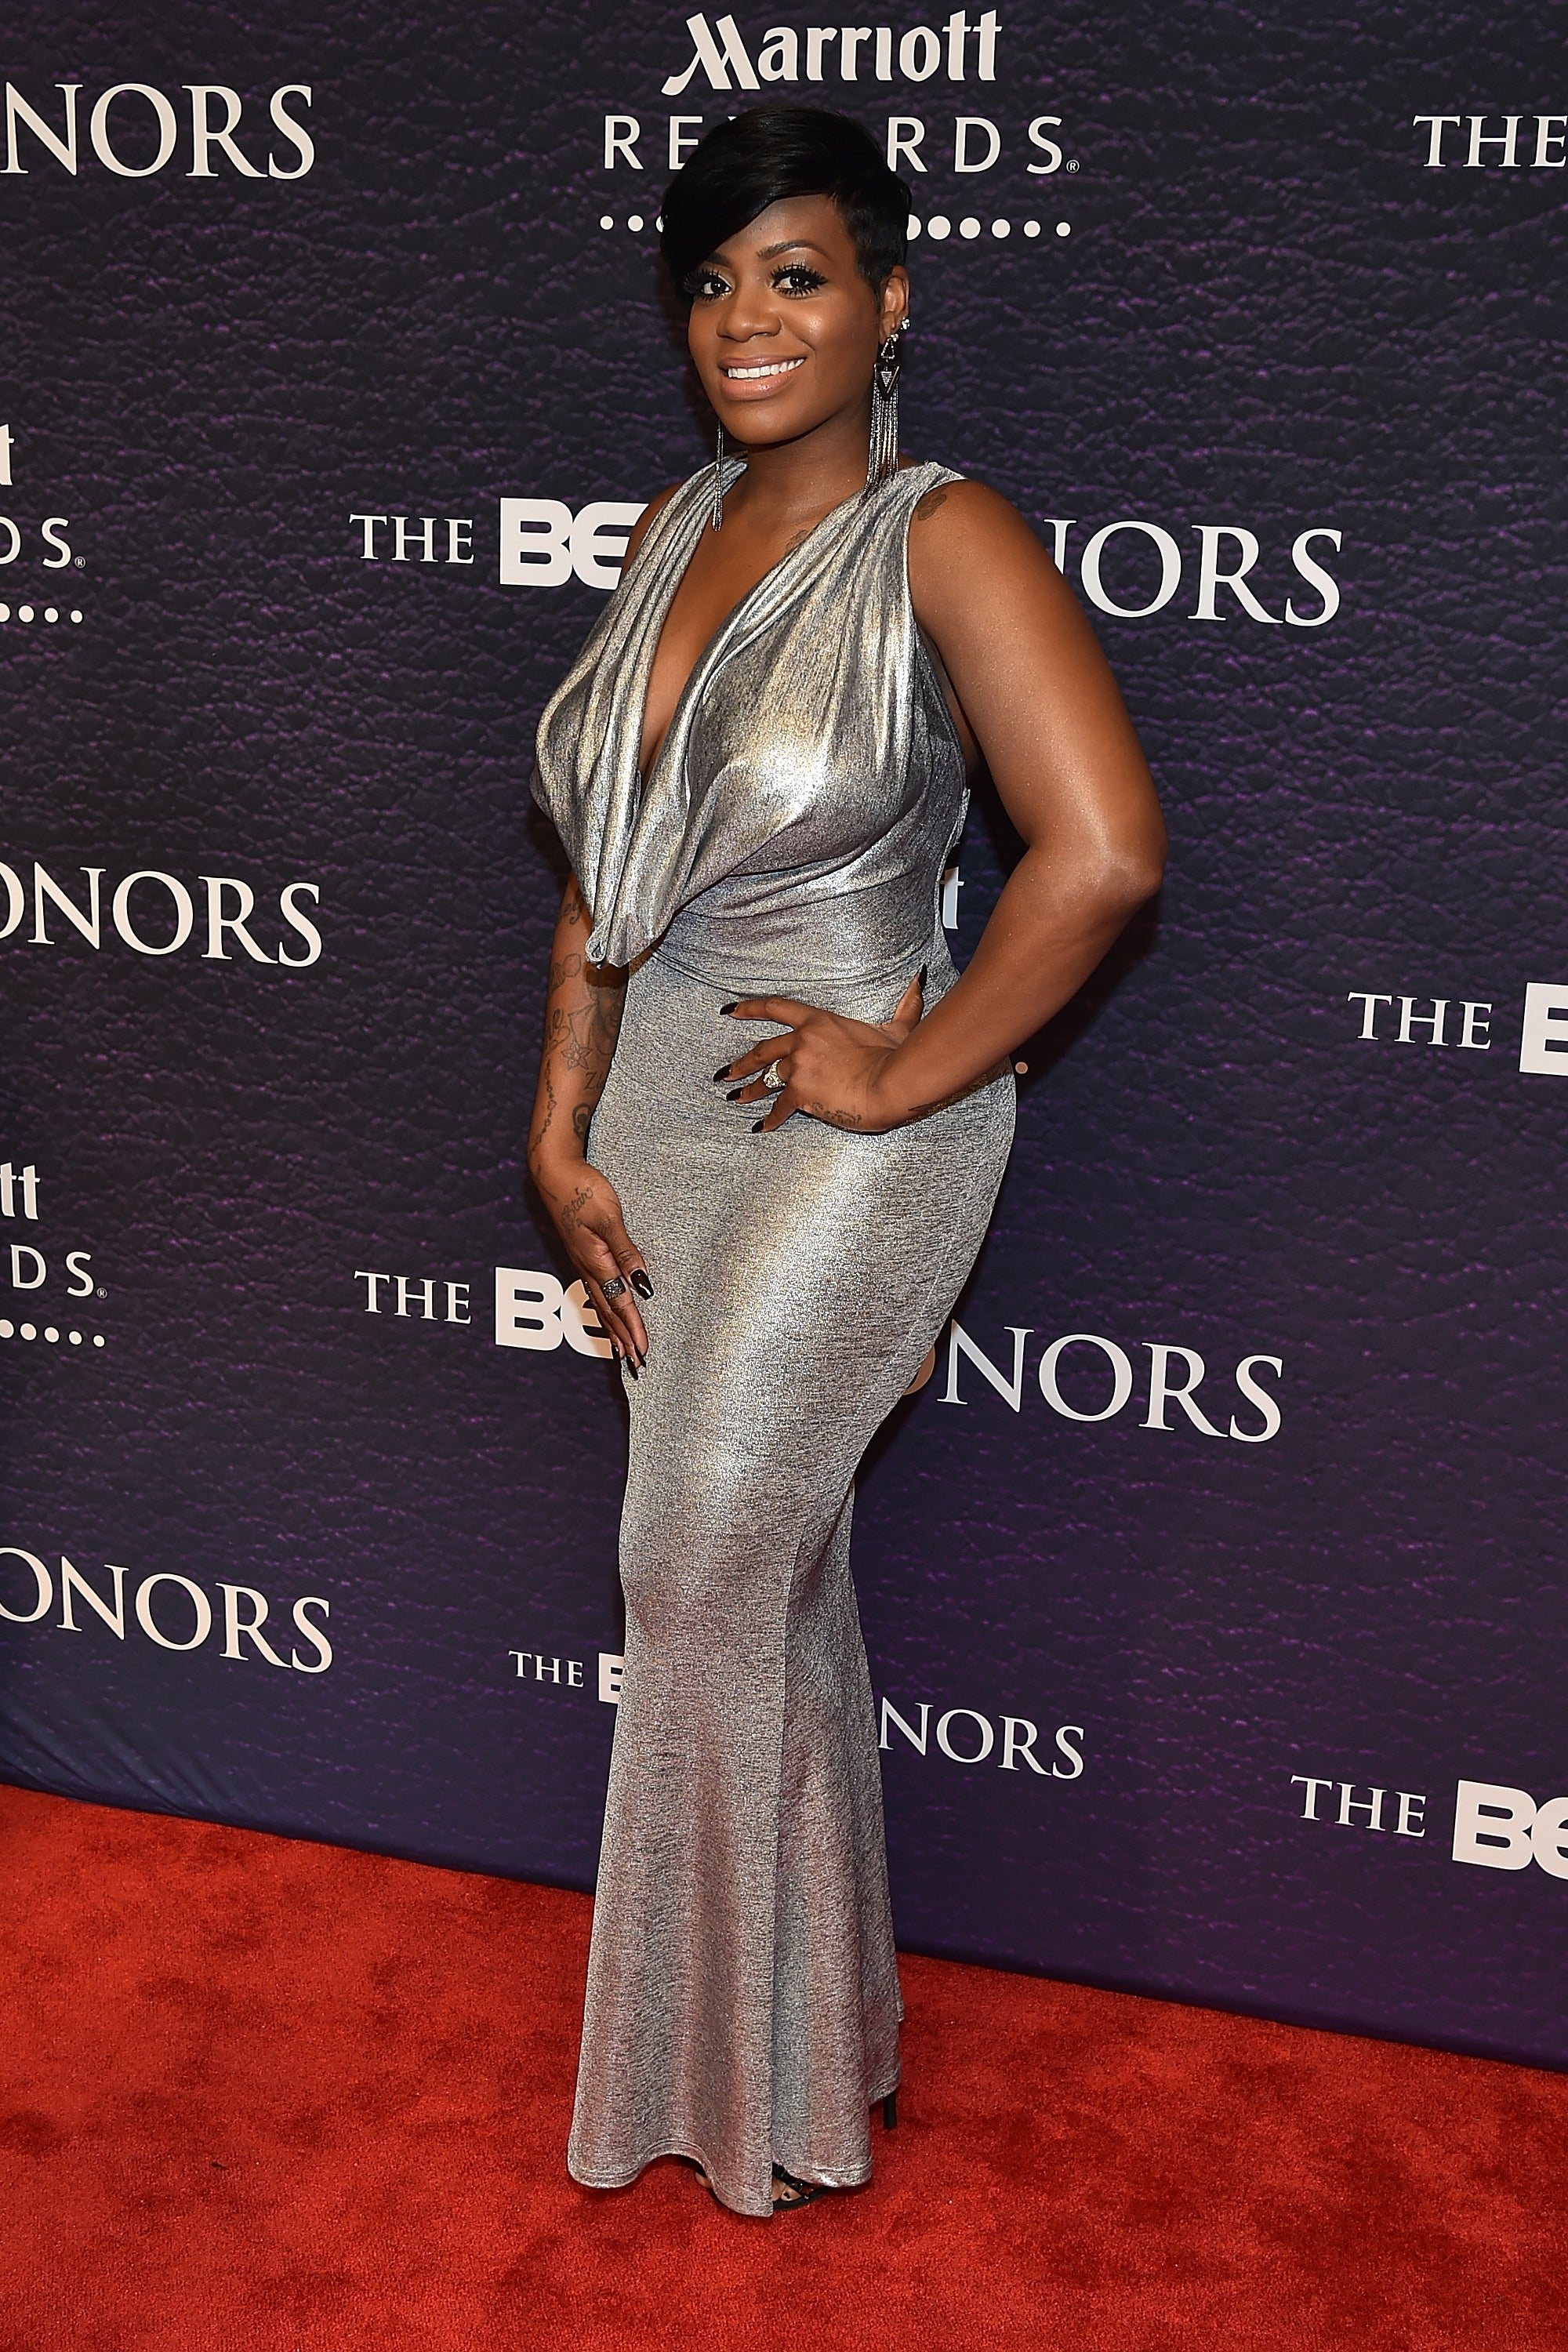 Fantasia to Perform Ugly on American Idol Series Finale